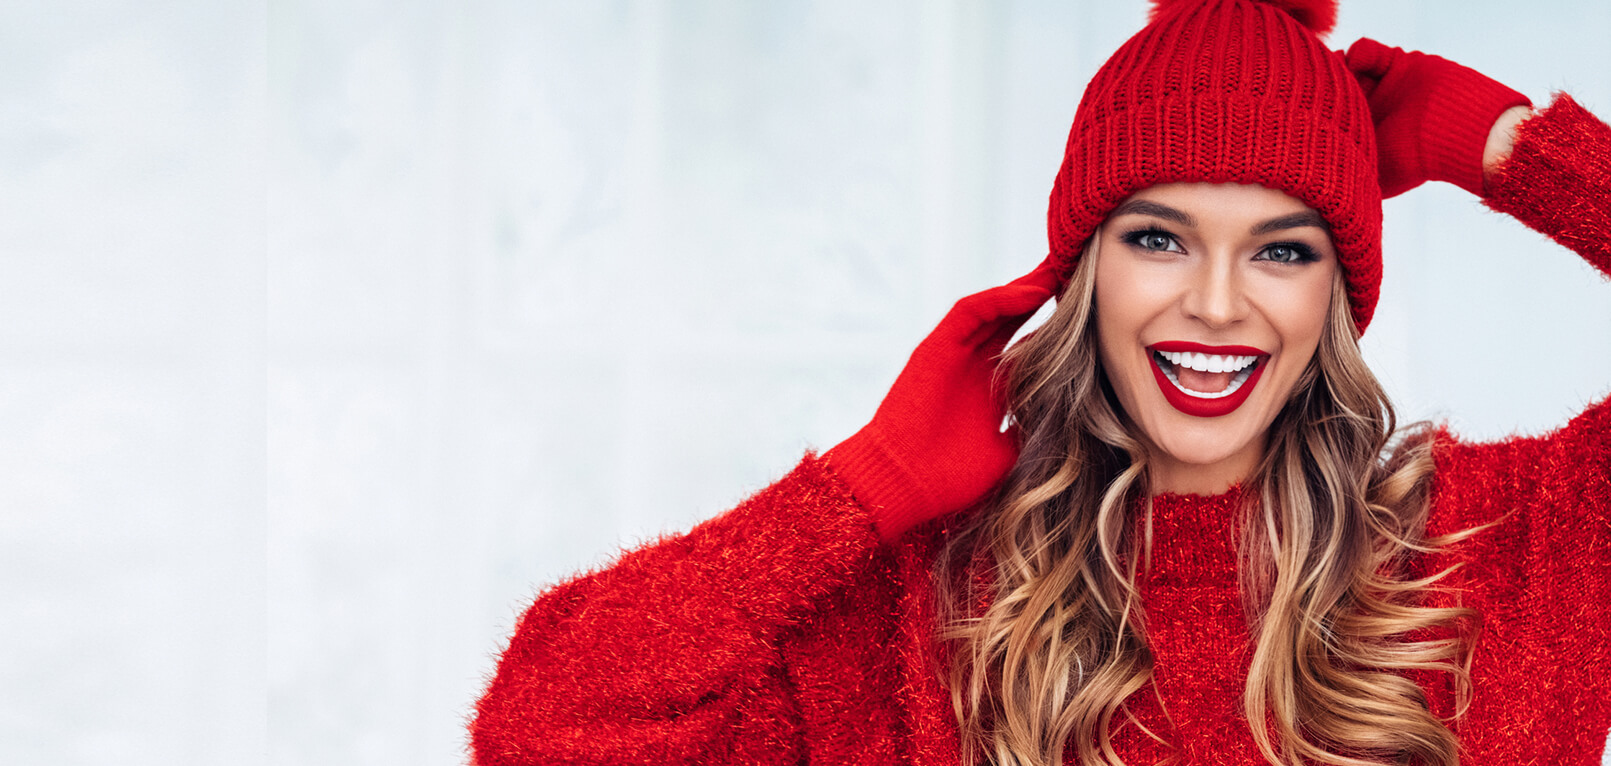 woman in red clothing with holiday style